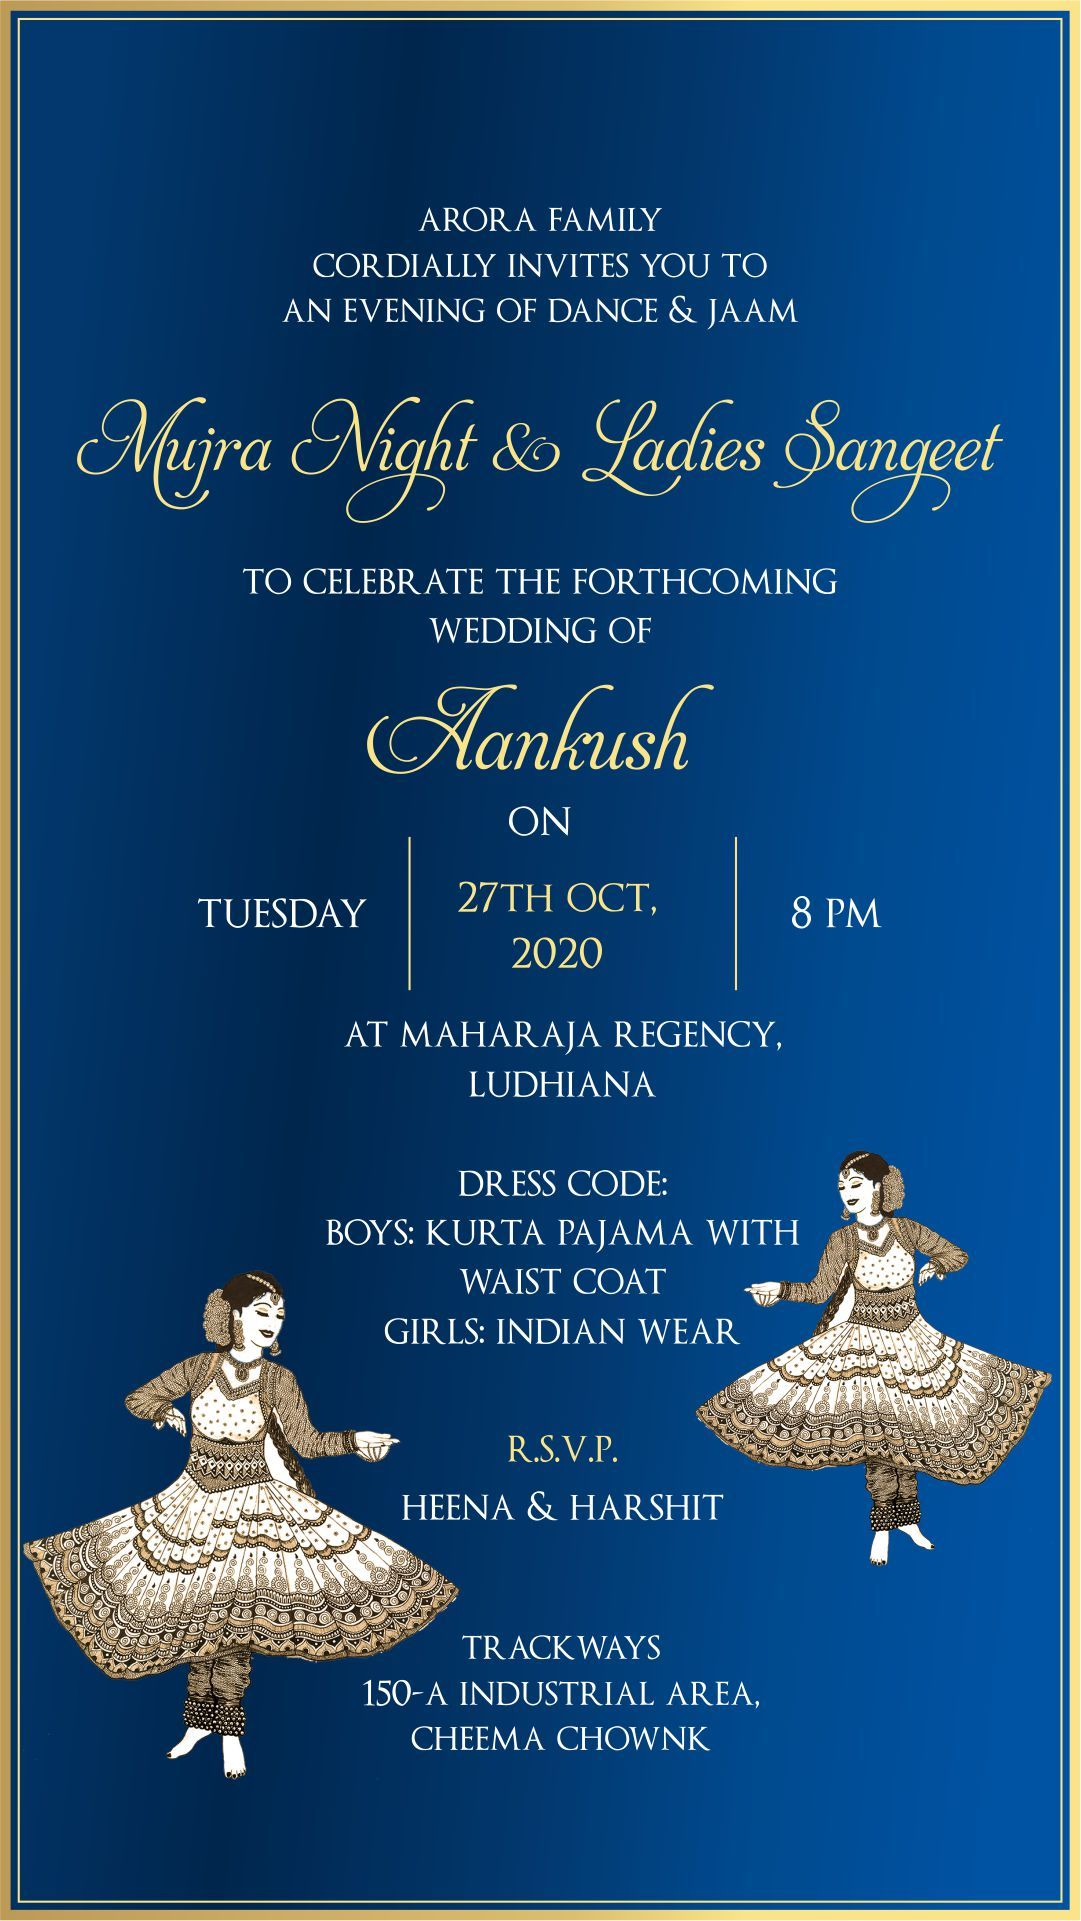 Best Digital Traditional Wedding Invitation Video For Whatsapp Indian Marri In 2020 Marriage Invitation Card Wedding Invitation Video Traditional Wedding Invitations